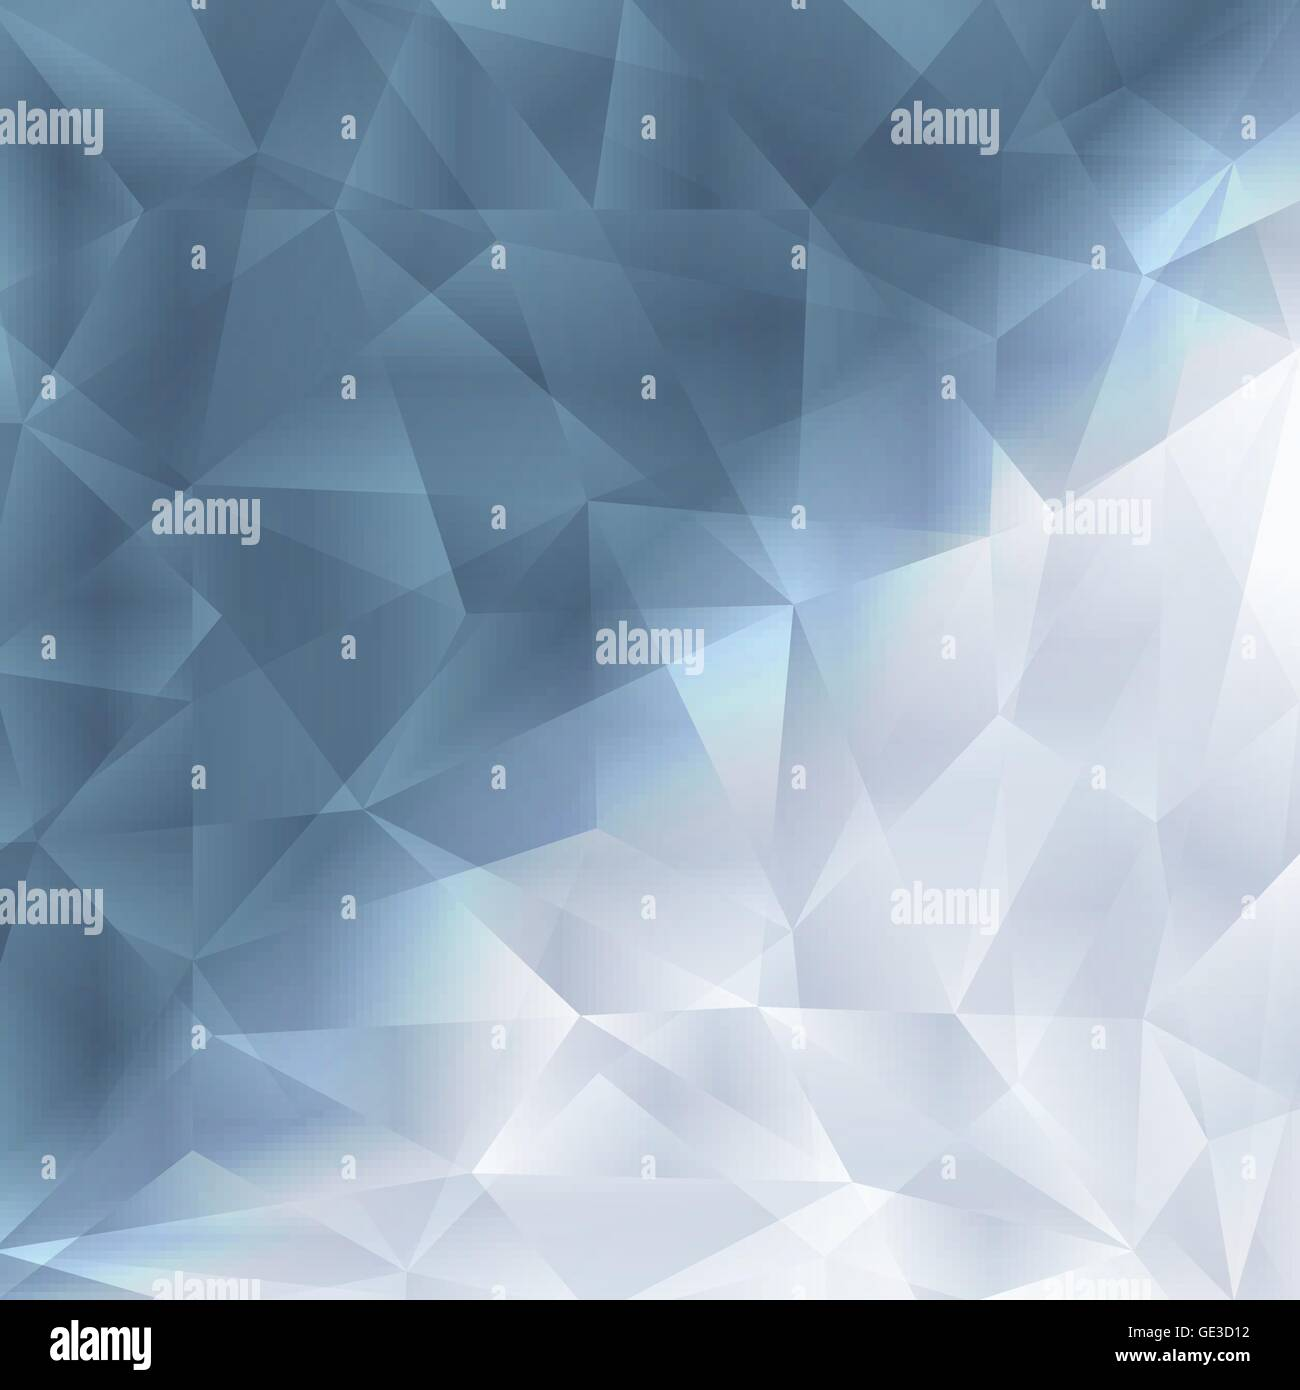 crystal fractal abstract background concept template for poster